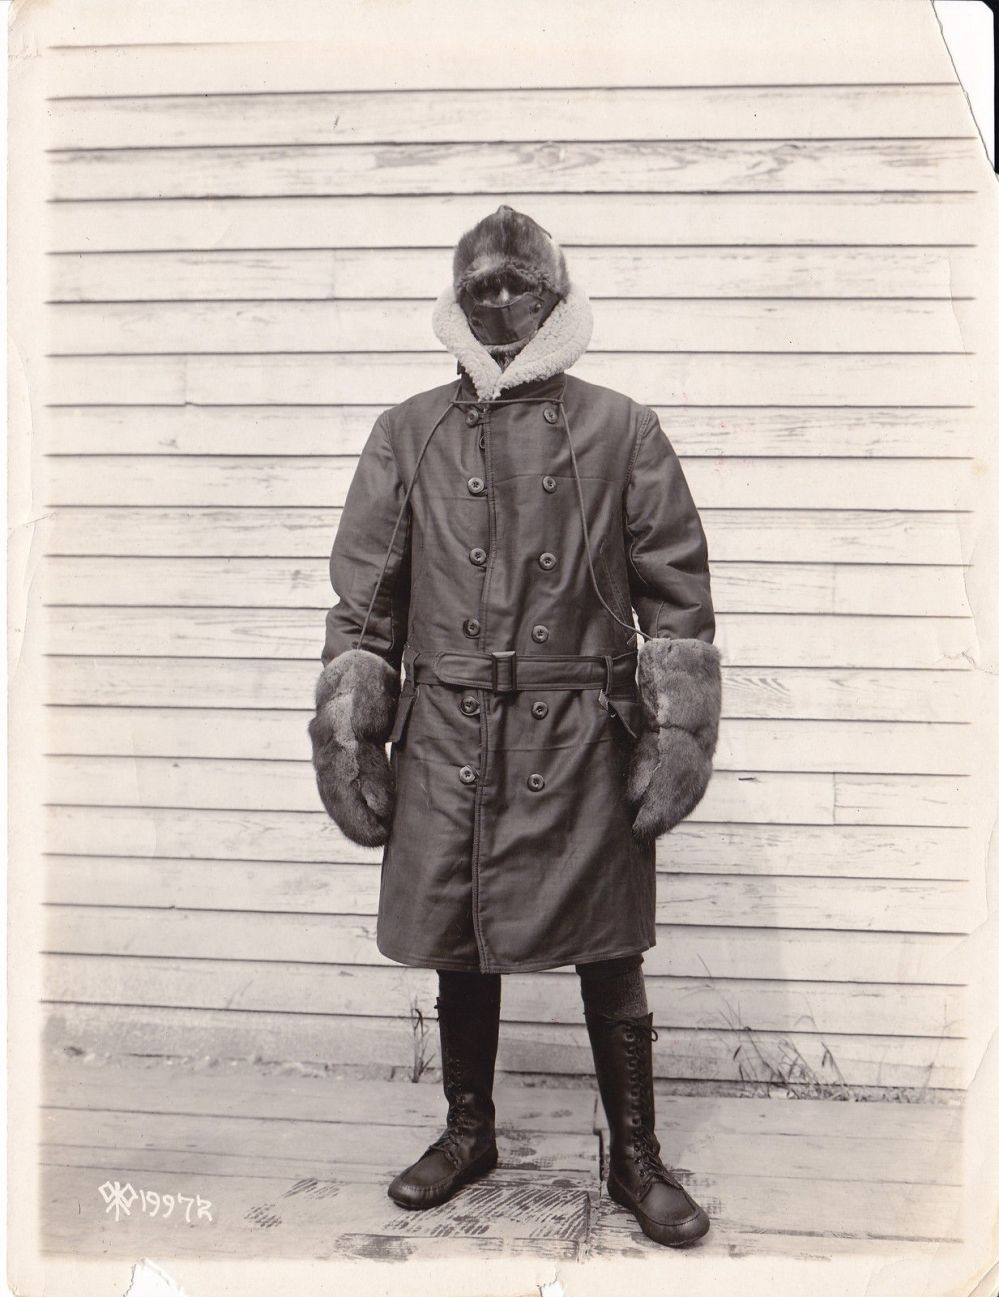 Vintage Winter Menswear Inspiration- The Iceman Cometh- 1920s